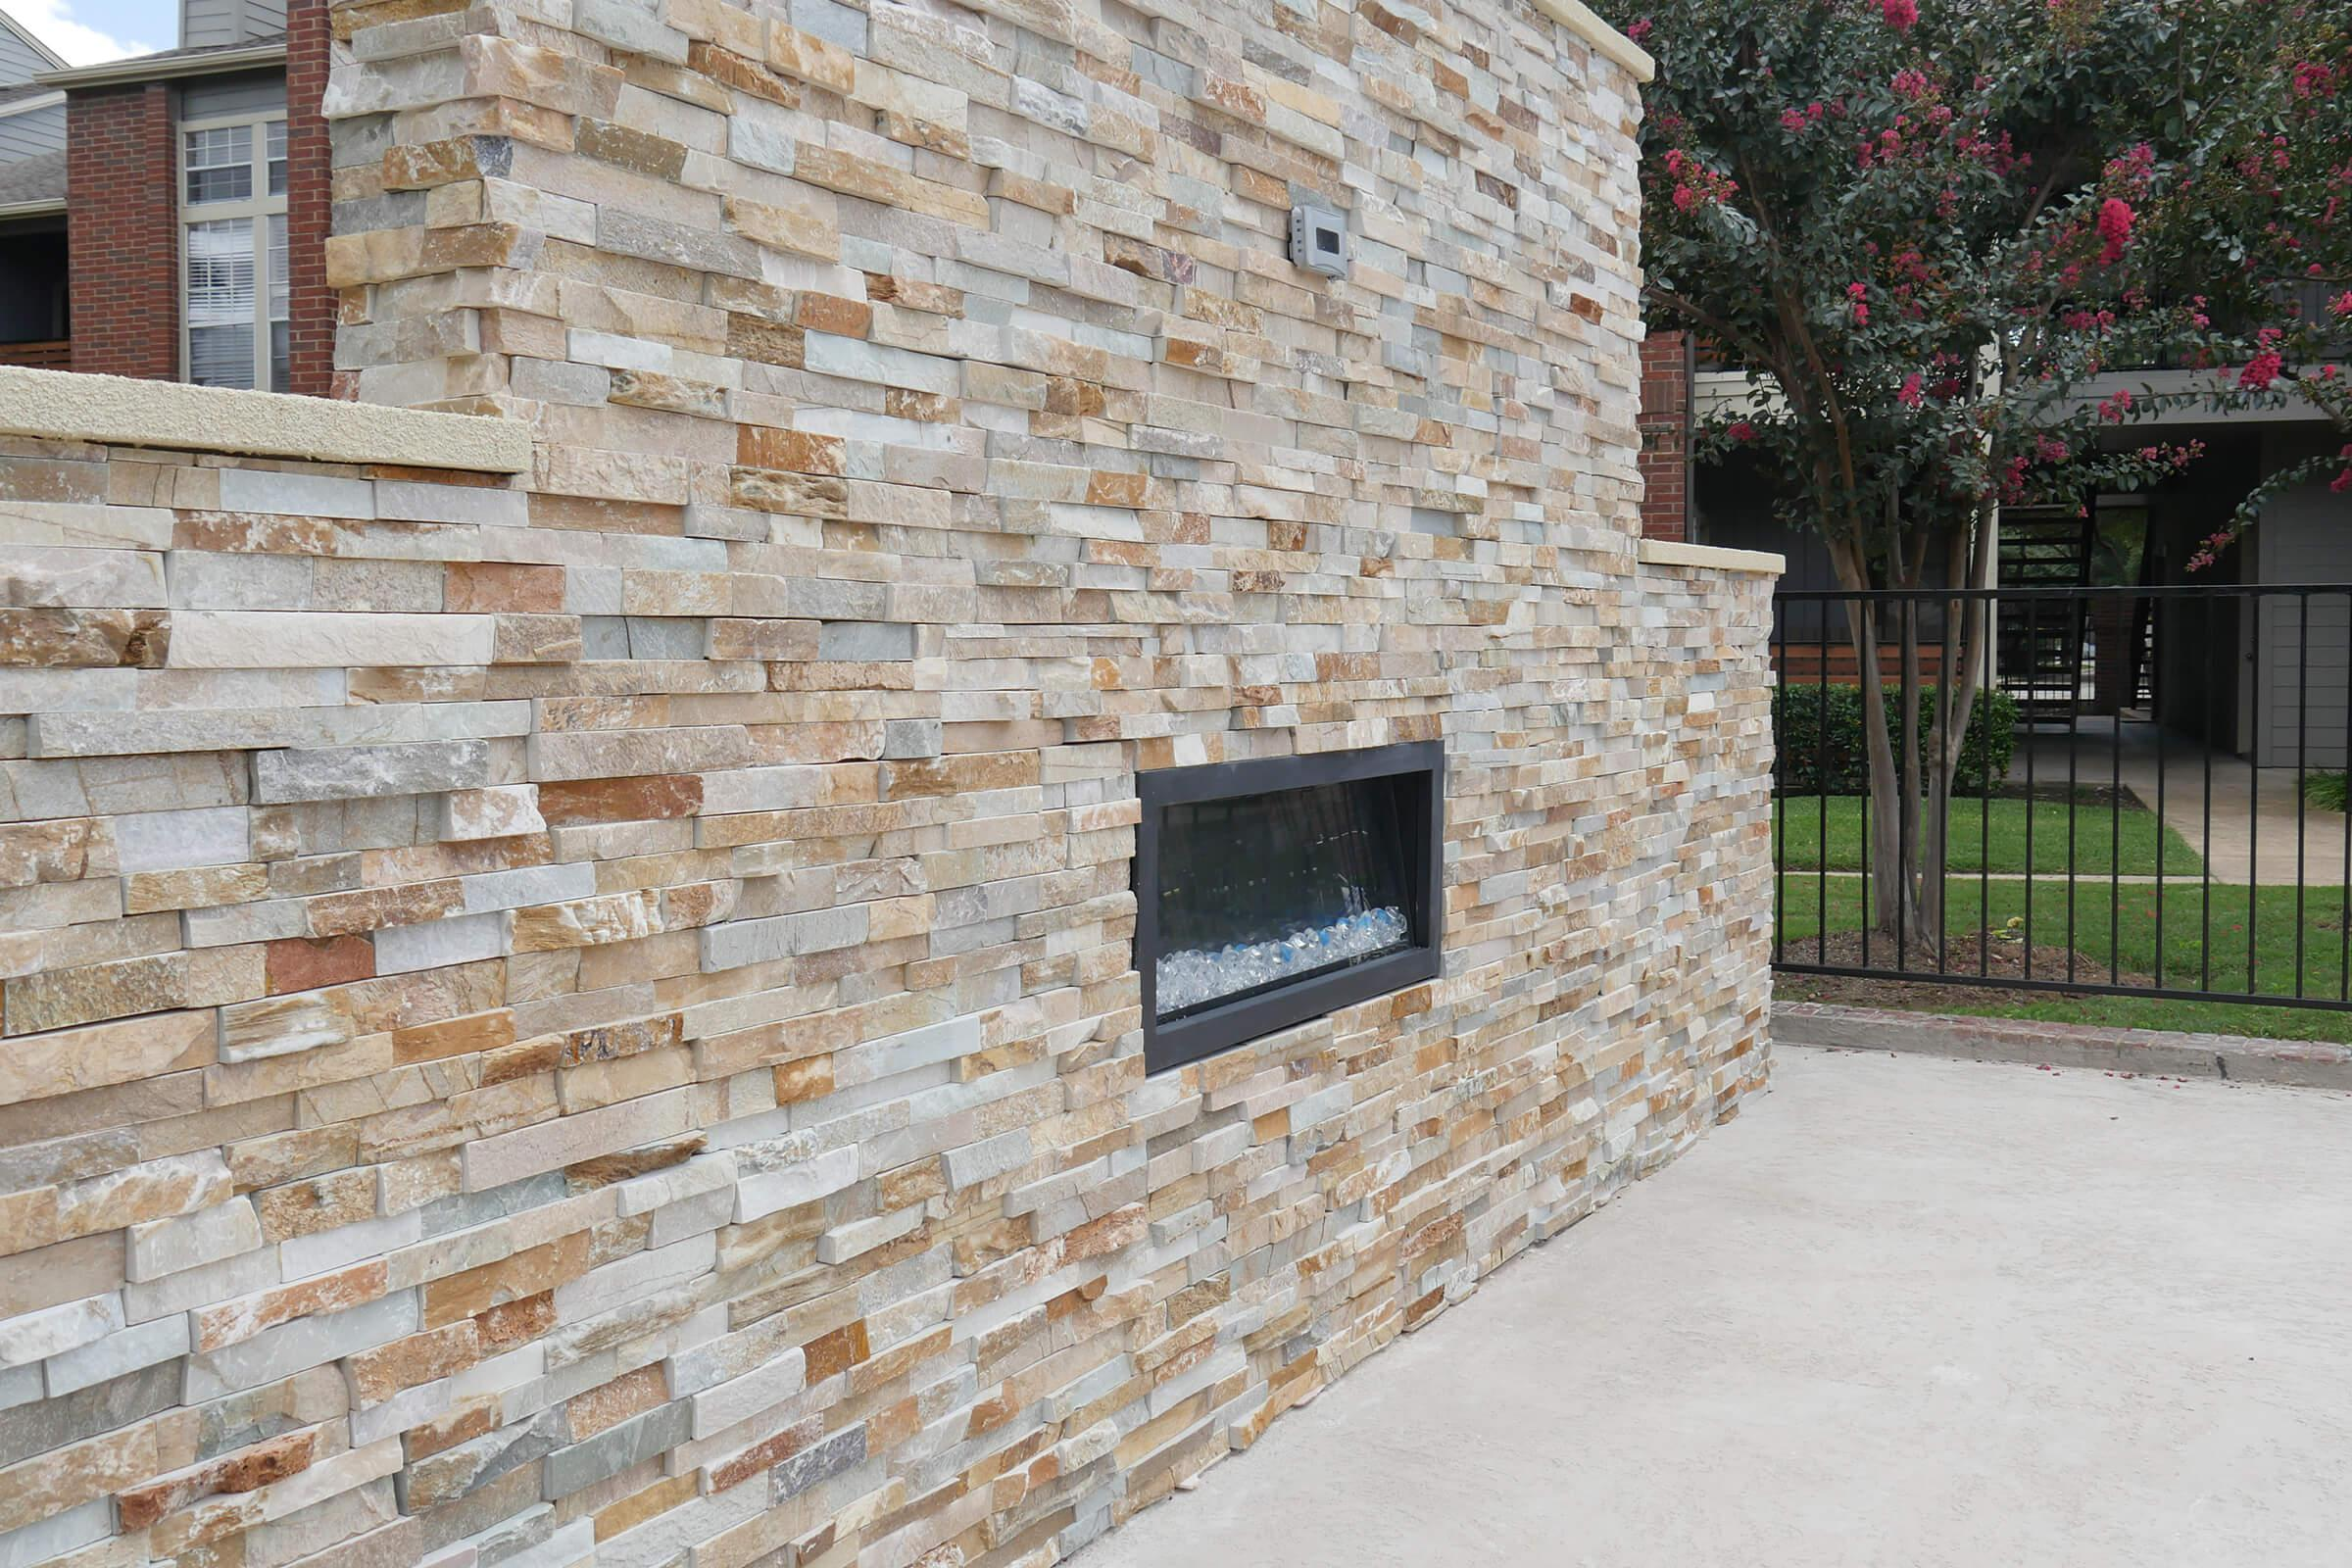 a fireplace in front of a brick building